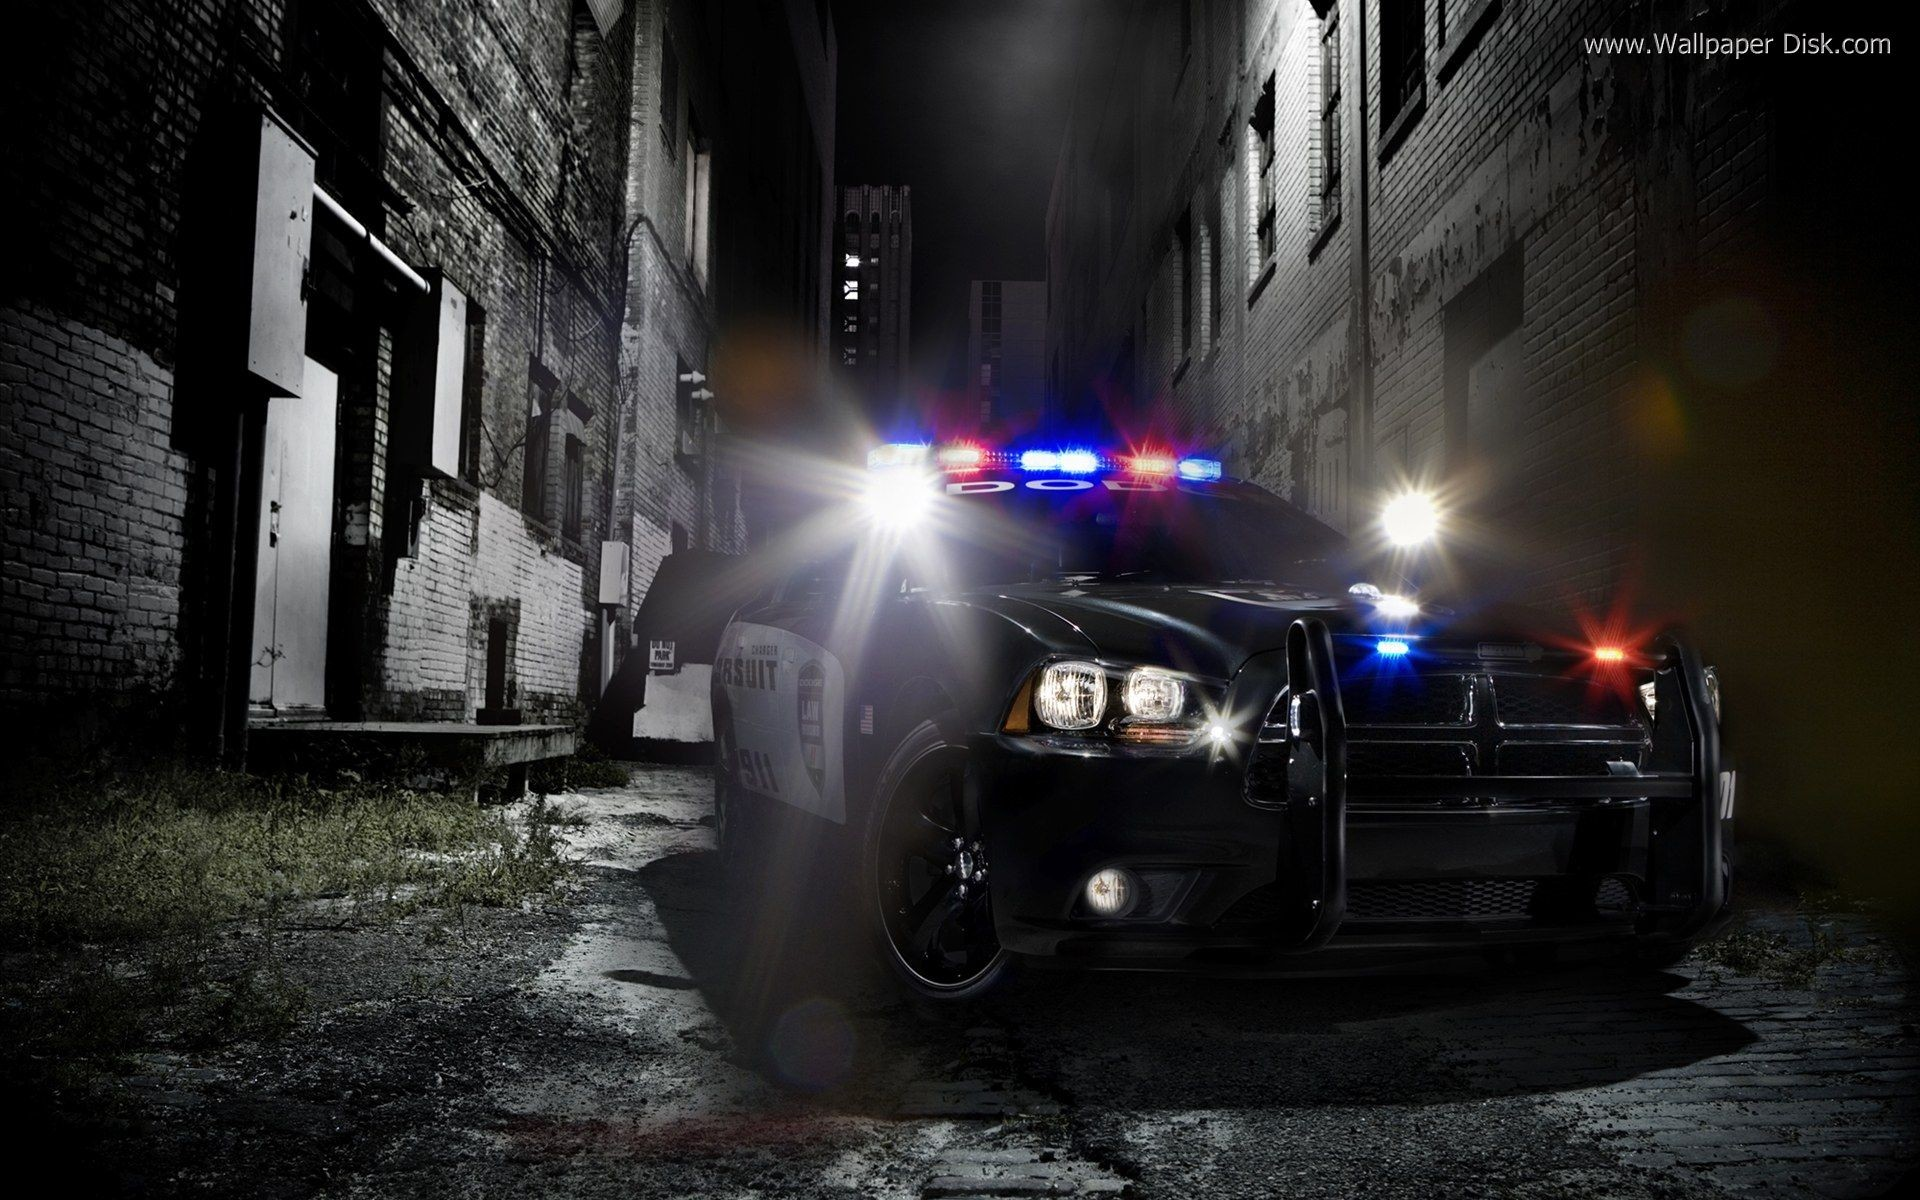 Police Car Wallpaper Backgrounds 66 images 1920x1200